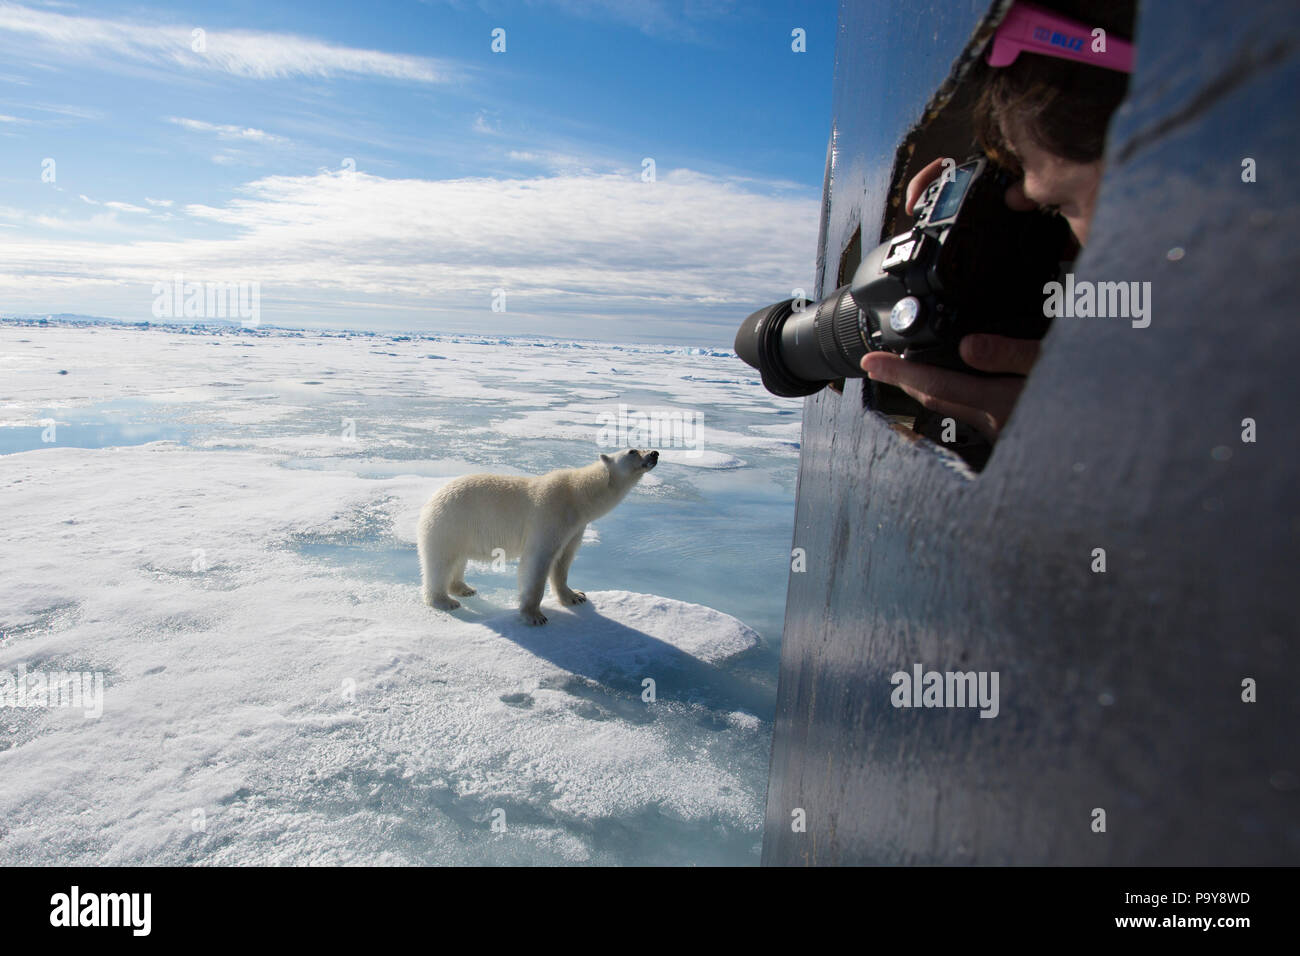 A Polar Bear approaches a tourist ship in the Arctic Ocean, photographed by a woman at a close distance. - Stock Image